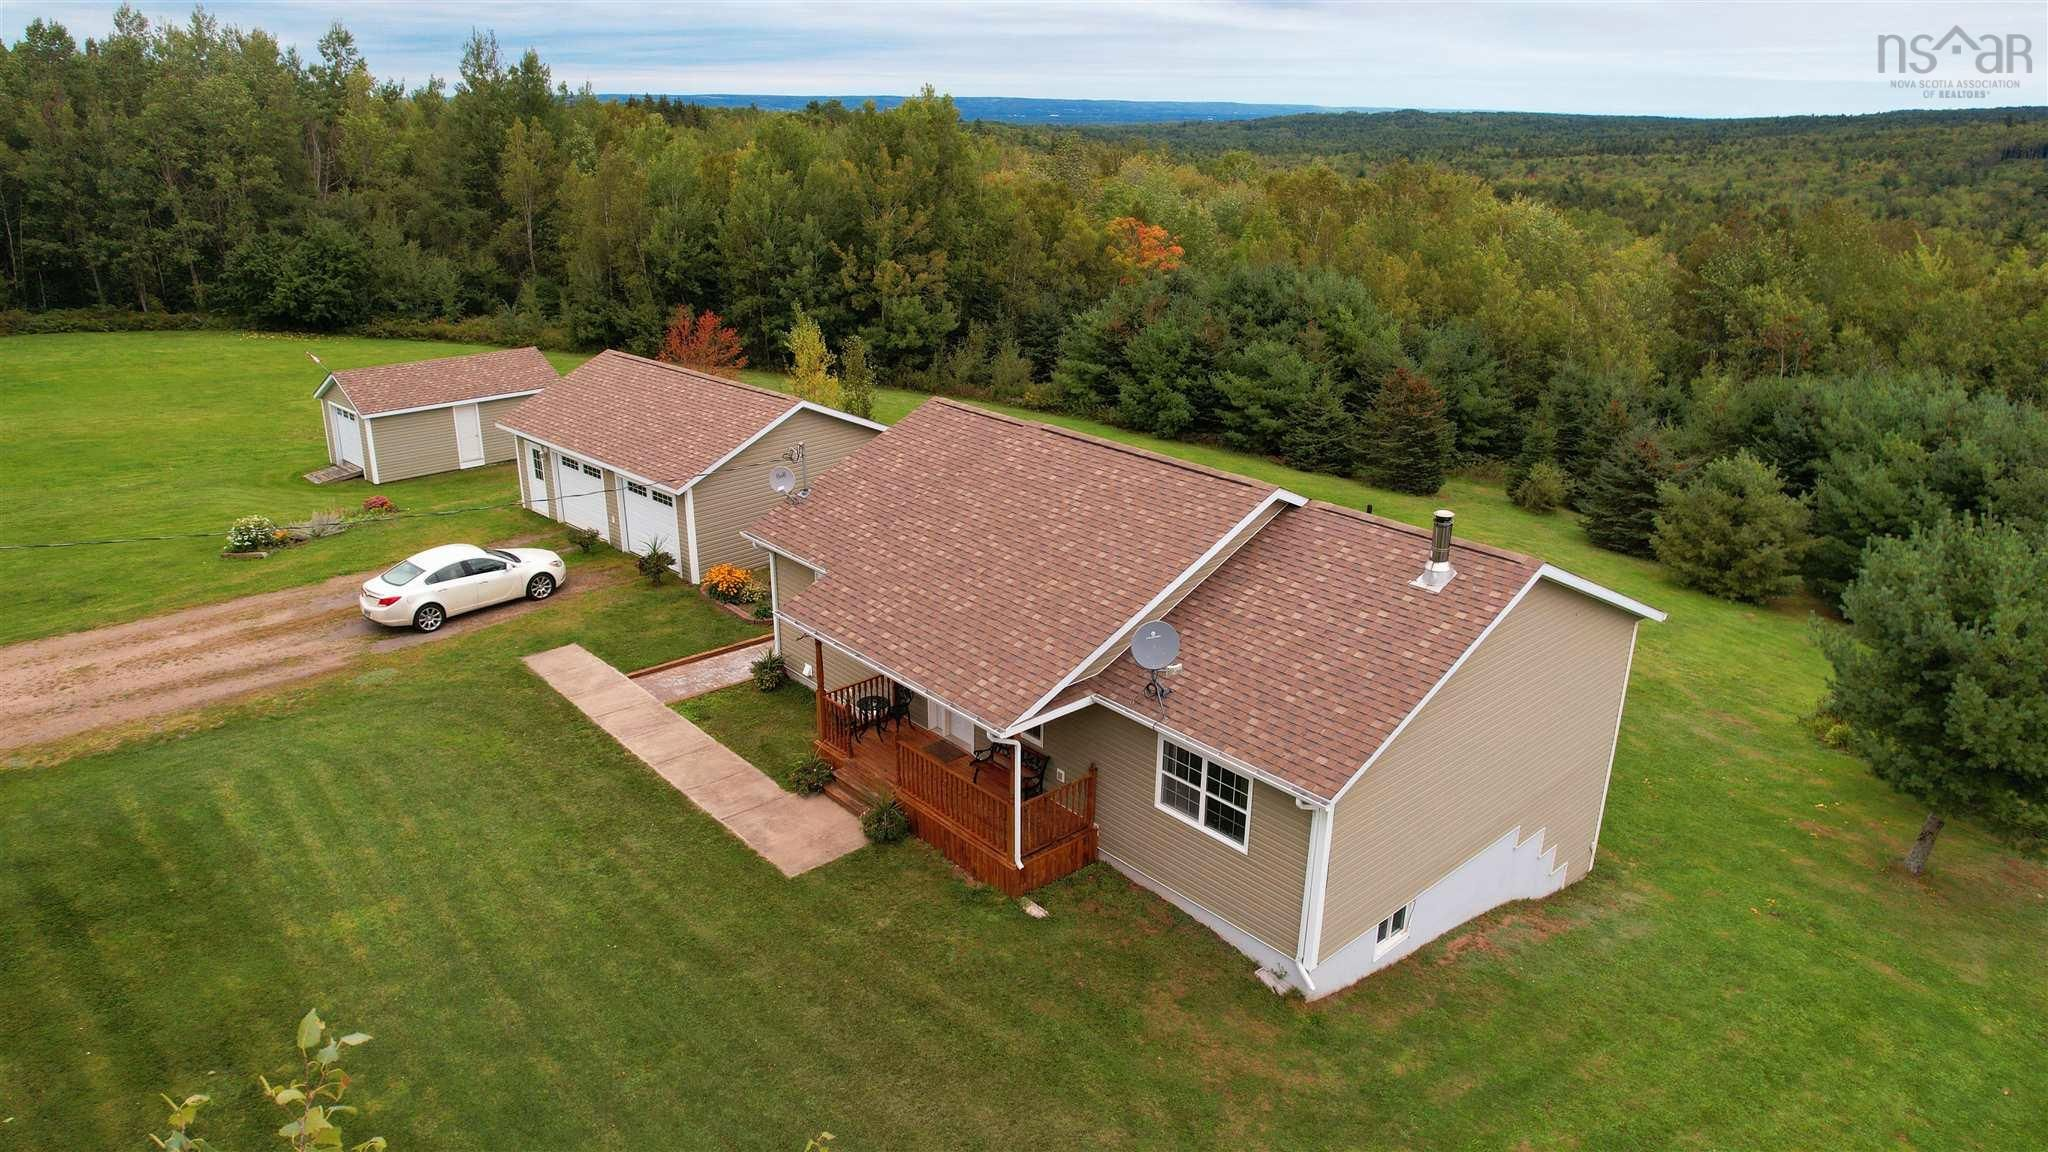 Main Photo: 571 East Torbrook Road in South Tremont: 404-Kings County Residential for sale (Annapolis Valley)  : MLS®# 202123955